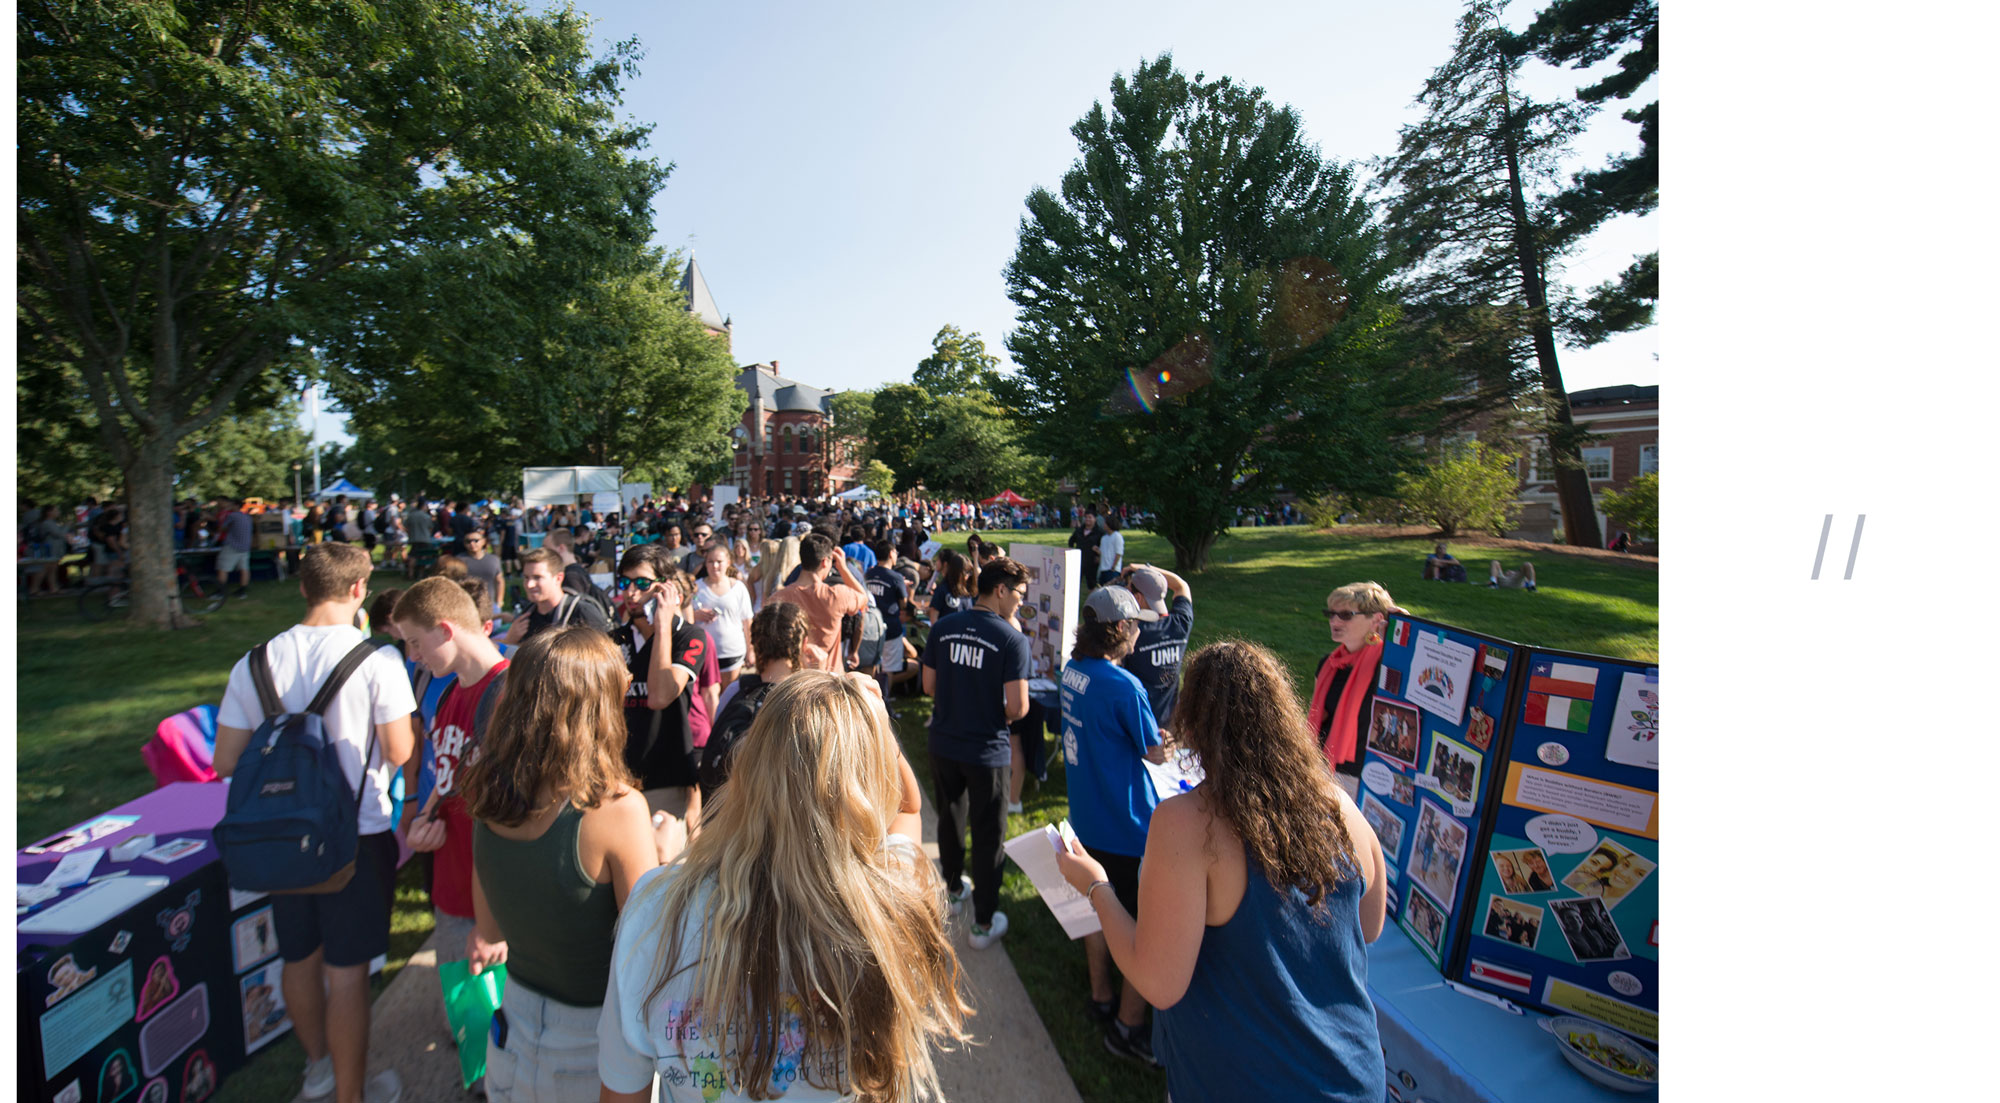 Loren-Marple_Photography_UNH-U-Day_RS55128_LPM_6699_gallery.jpg